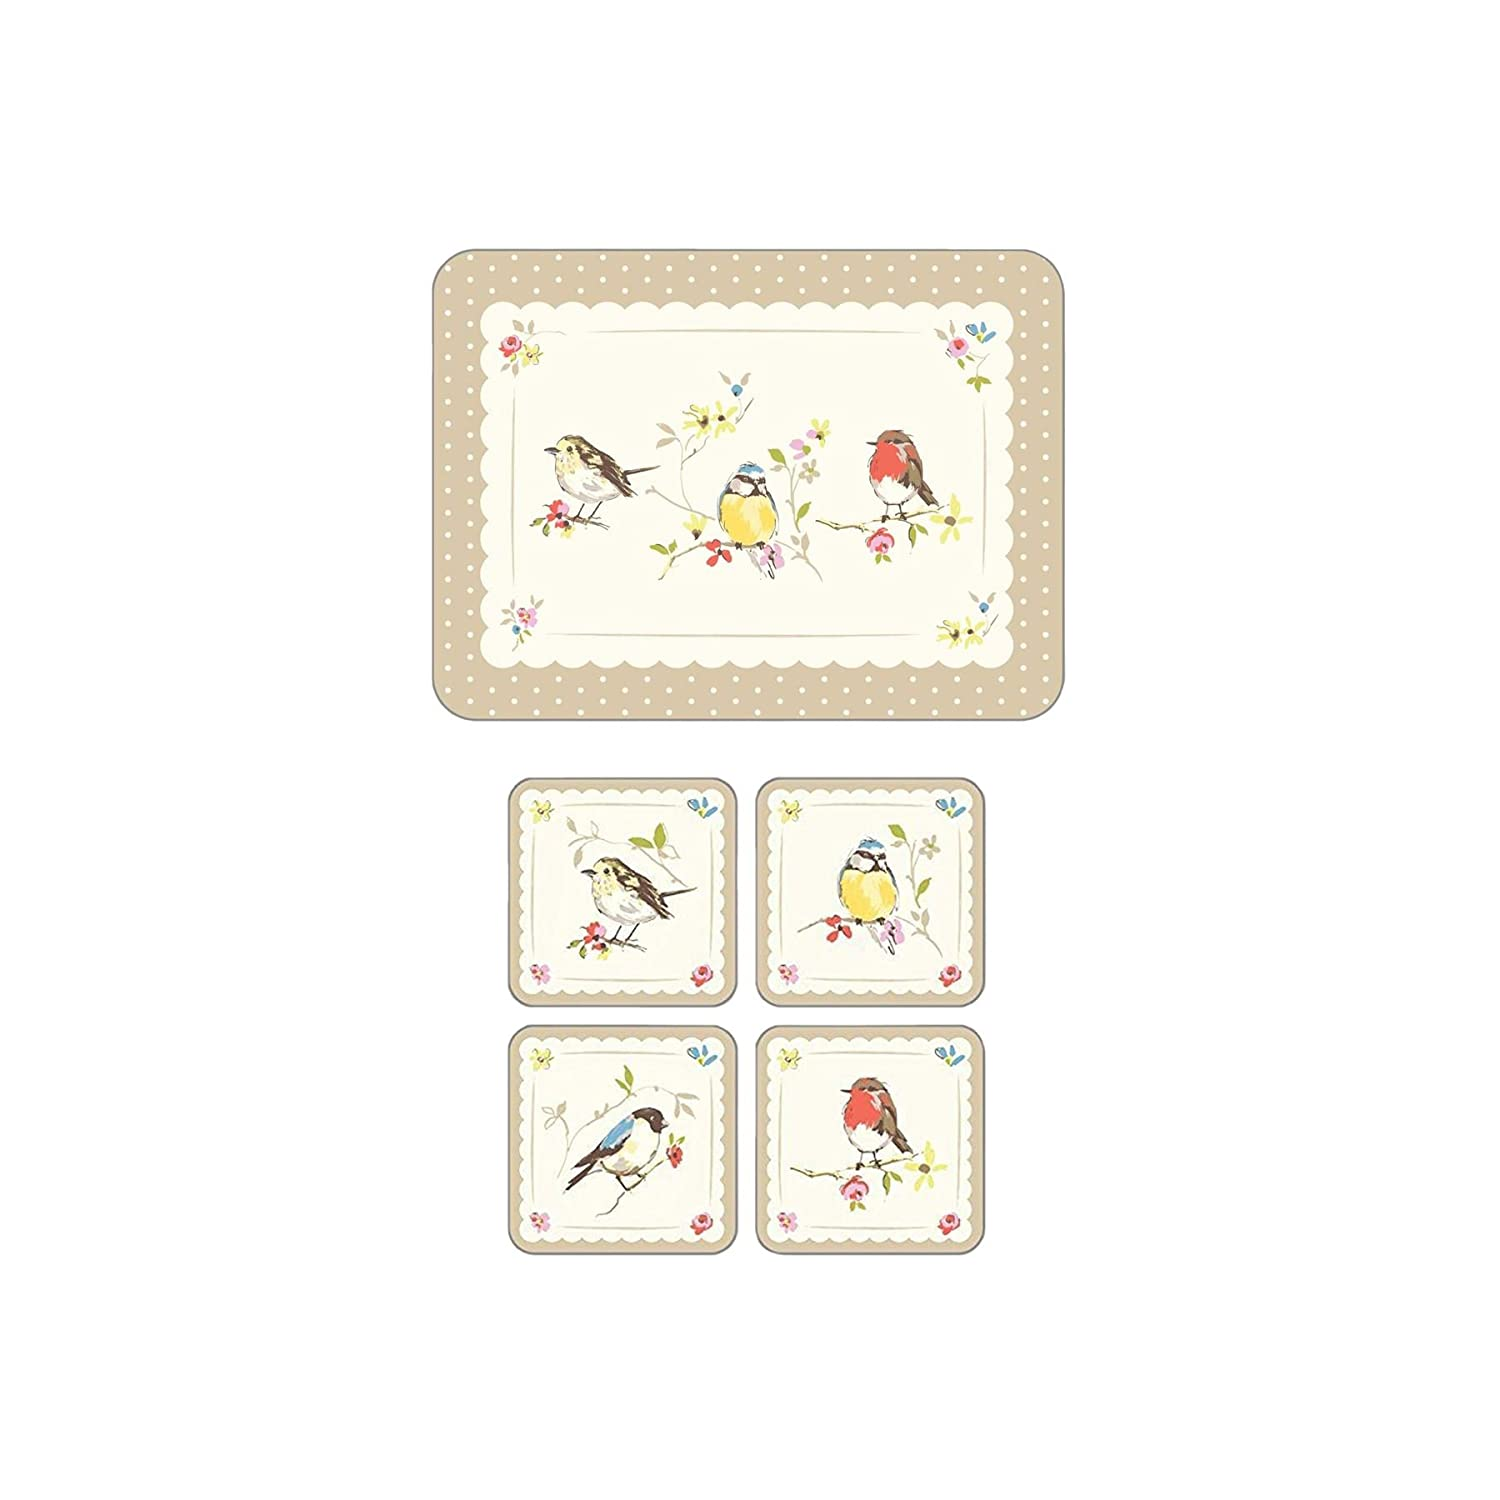 LUXURY BRIGHT COUNTRY ROBIN BIRDS POLKA DOTS 4 X COASTERS & PLACEMATS CORK BACKED Birds Unique